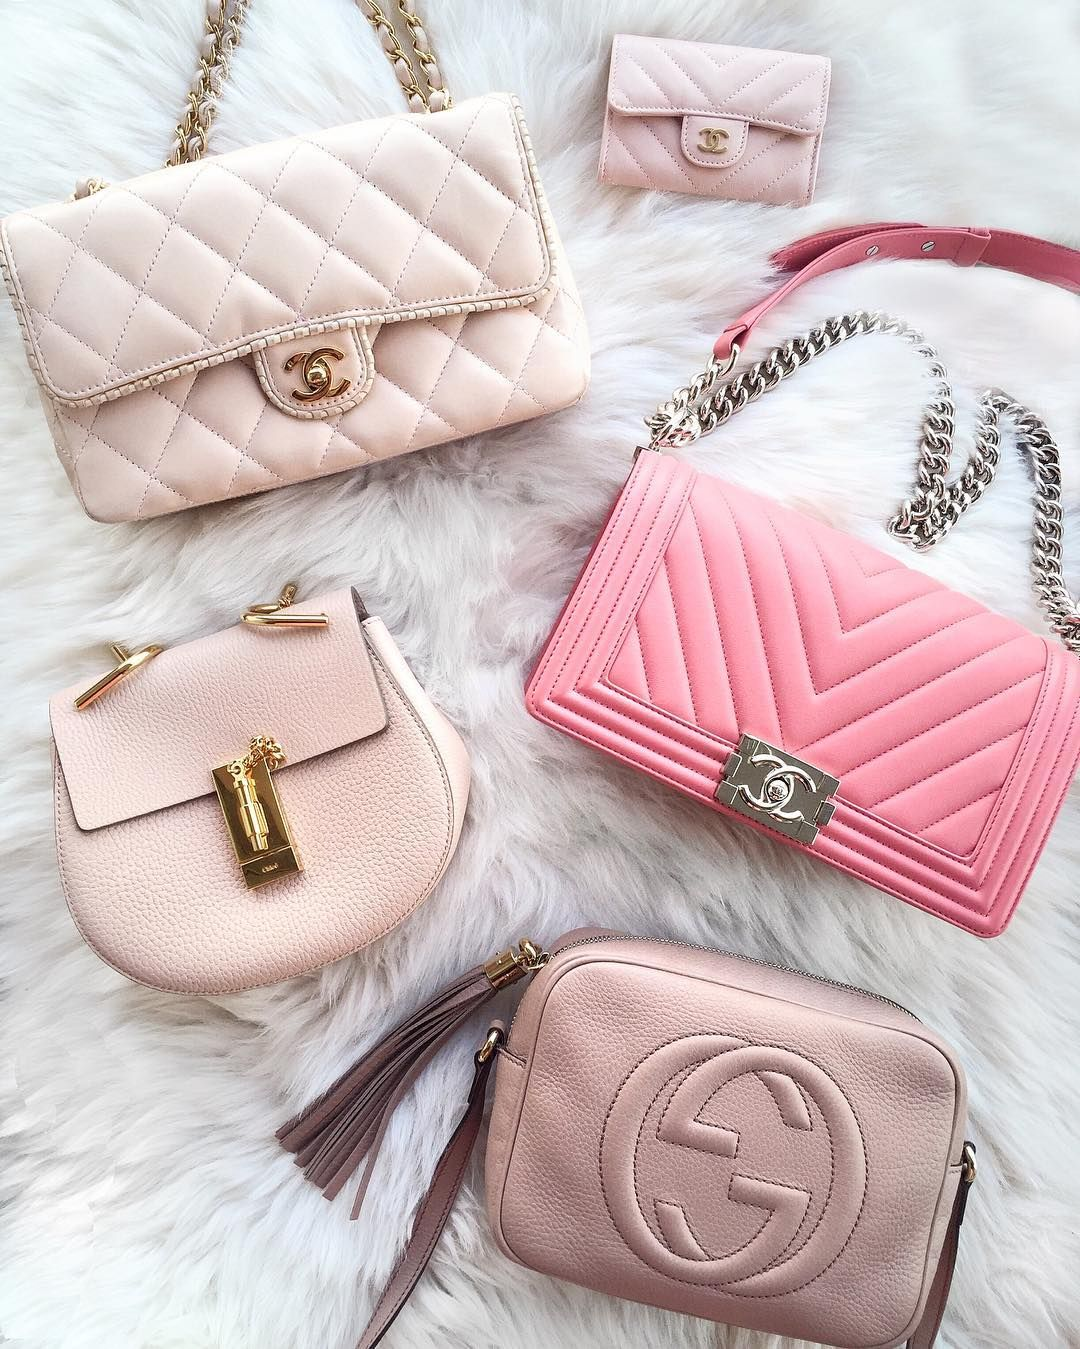 Image result for branded bag pinterest